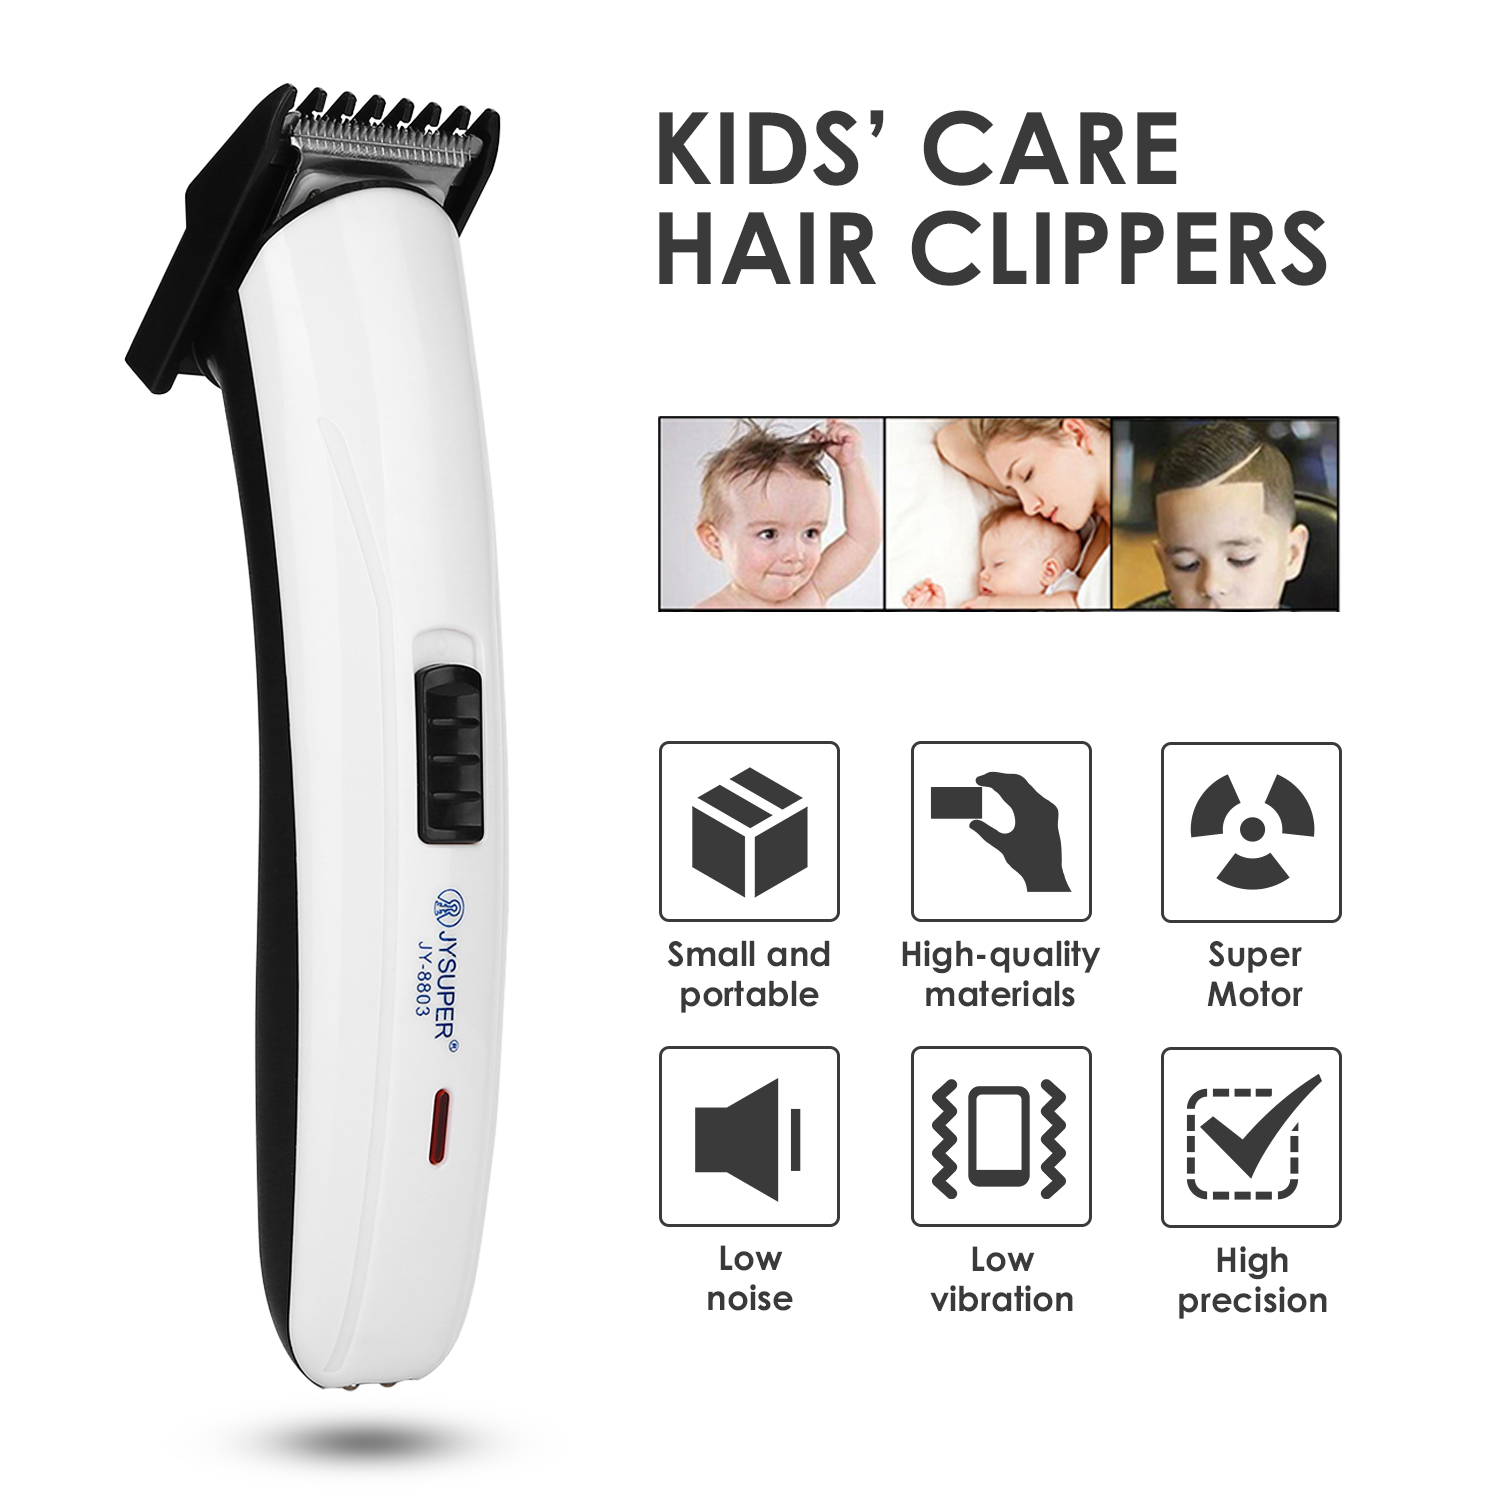 Kids Hair Care Child Hair Clippers Electric Quiet Trimmer Rechargeable Hair Cutting Machine Low Noise High Precision Kid Trimmer